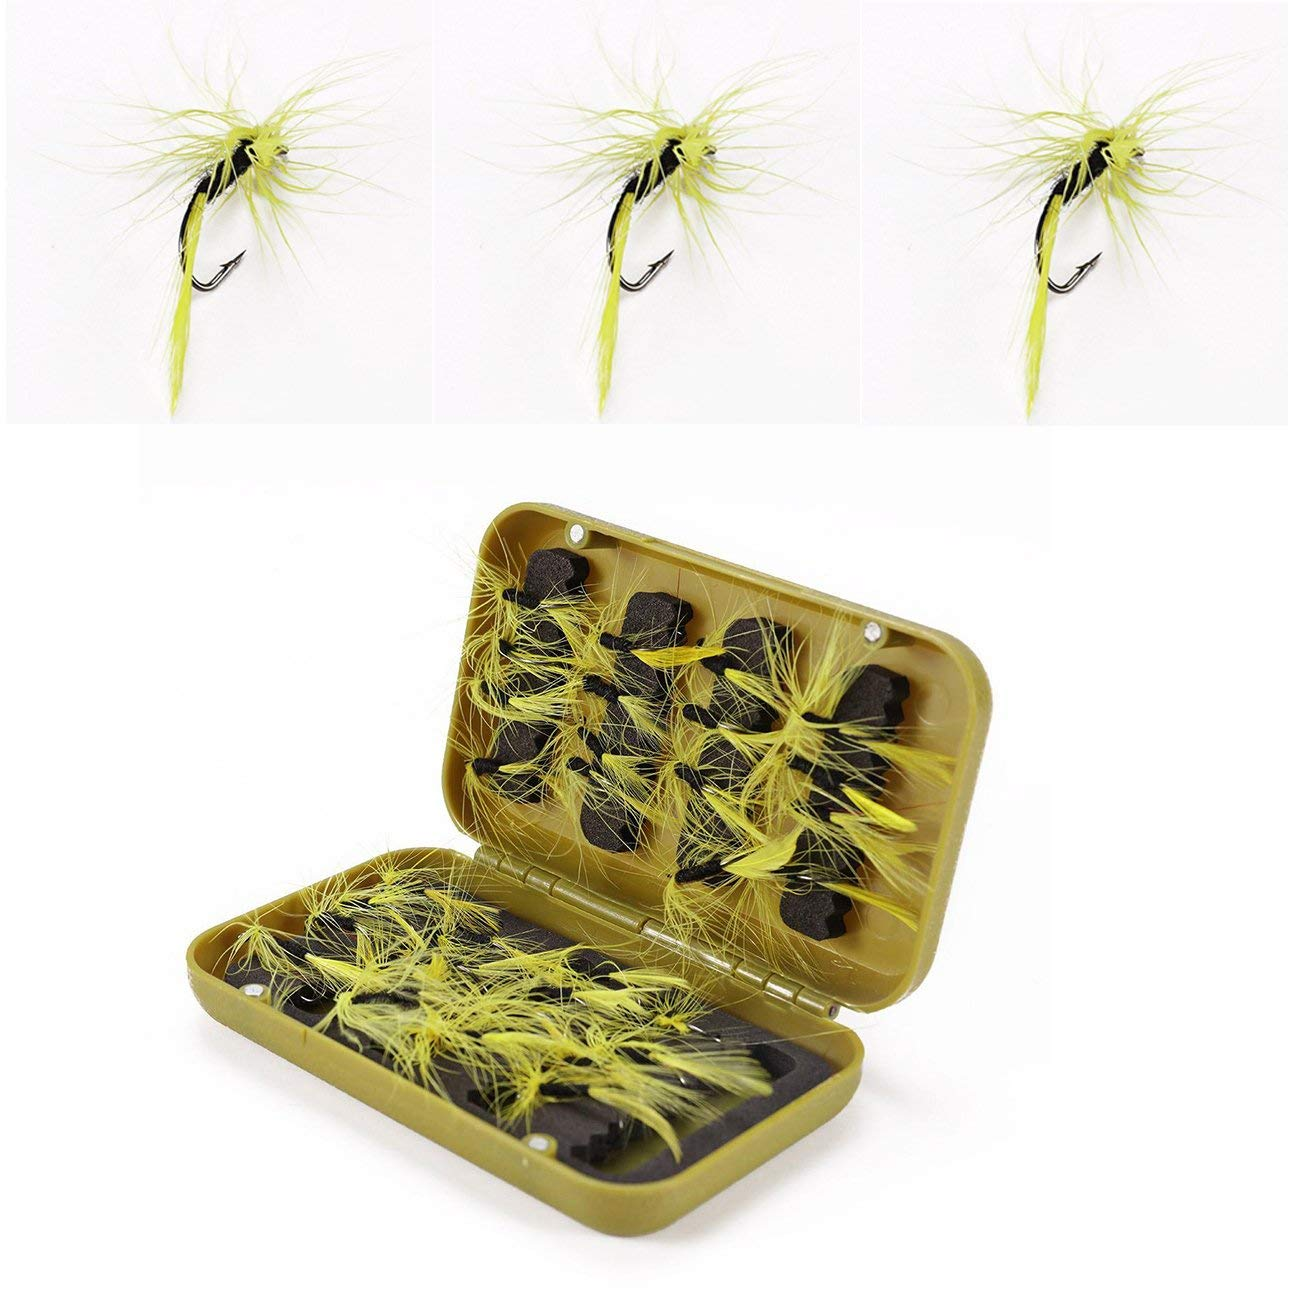 Dyna-Living Fly Fishing Flies Kit - 32 pcs Handmade Fly Fishing Lures - Dry Flies,Streamer, Nymph, Emerger with Waterproof Fly Box